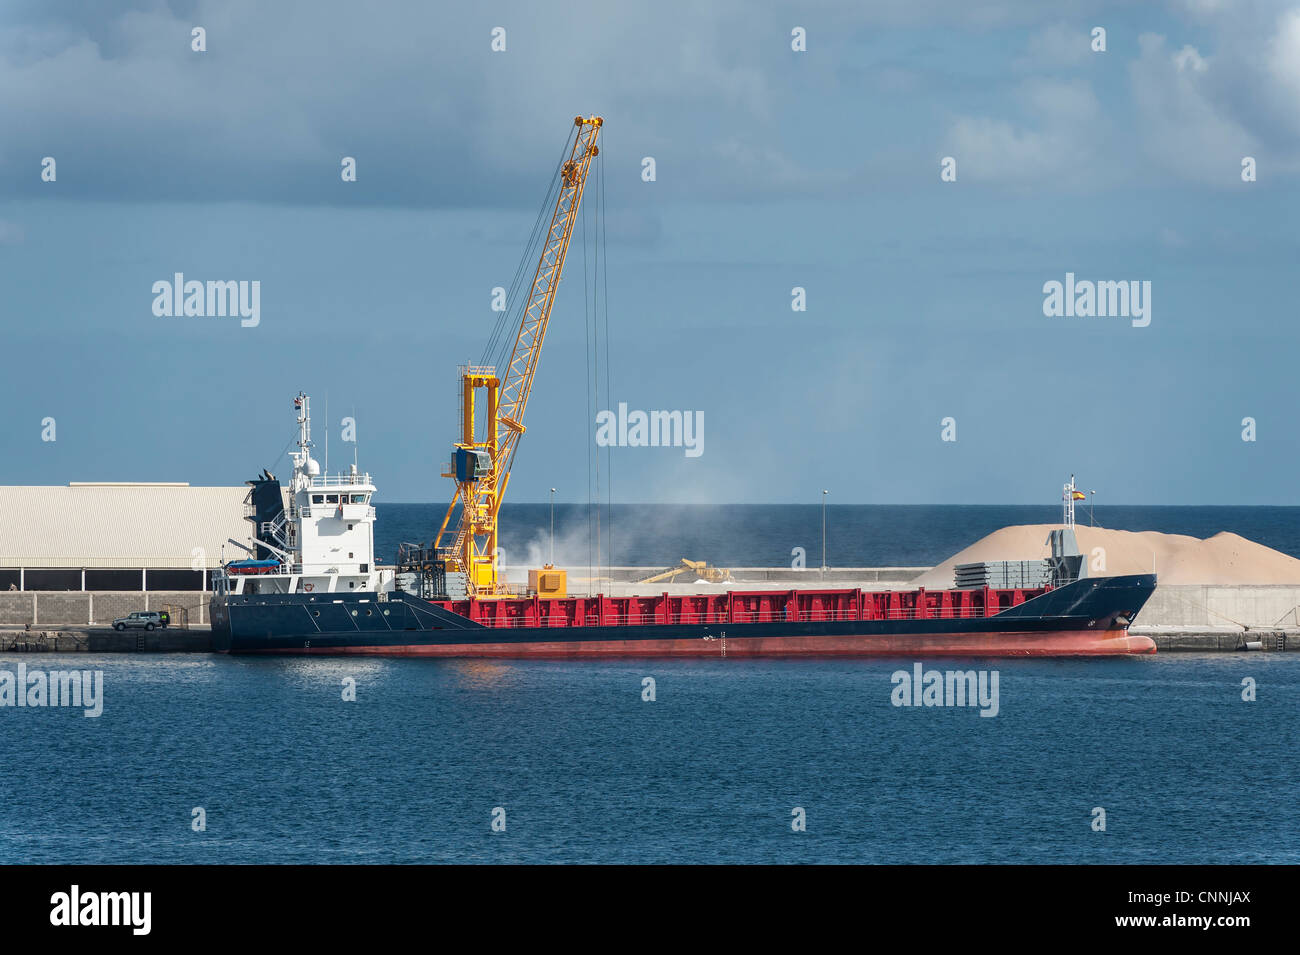 Bulk load being loaded on a vessel in the harbour - Stock Image